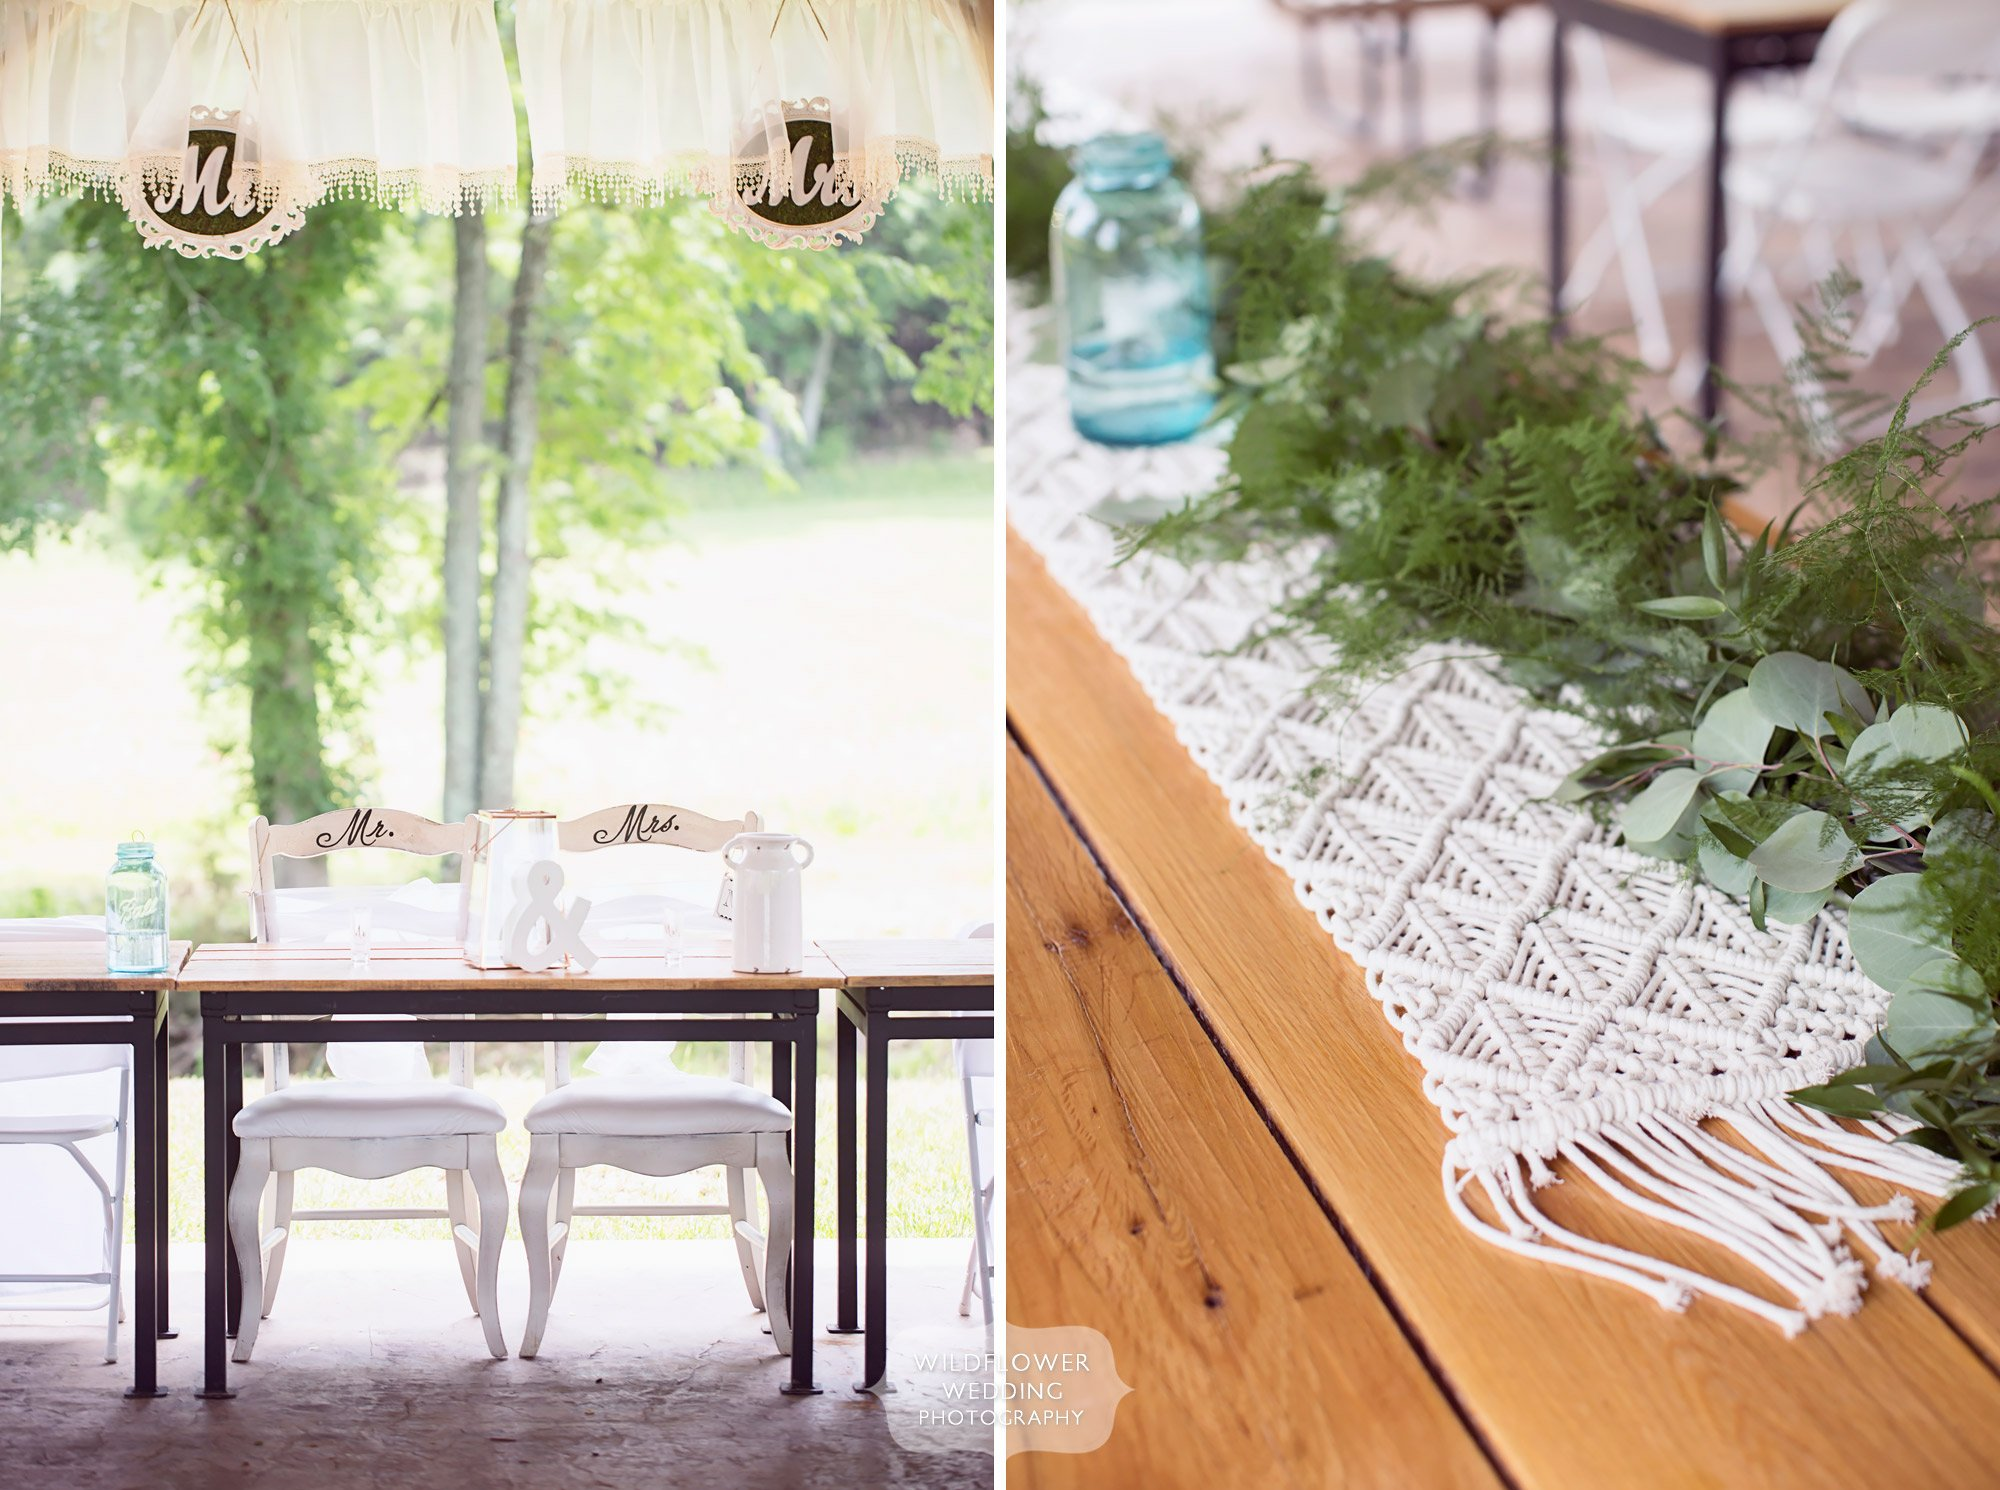 These woven macrame table runners were perfect for this barn wedding in the country at Kempker's Back 40.